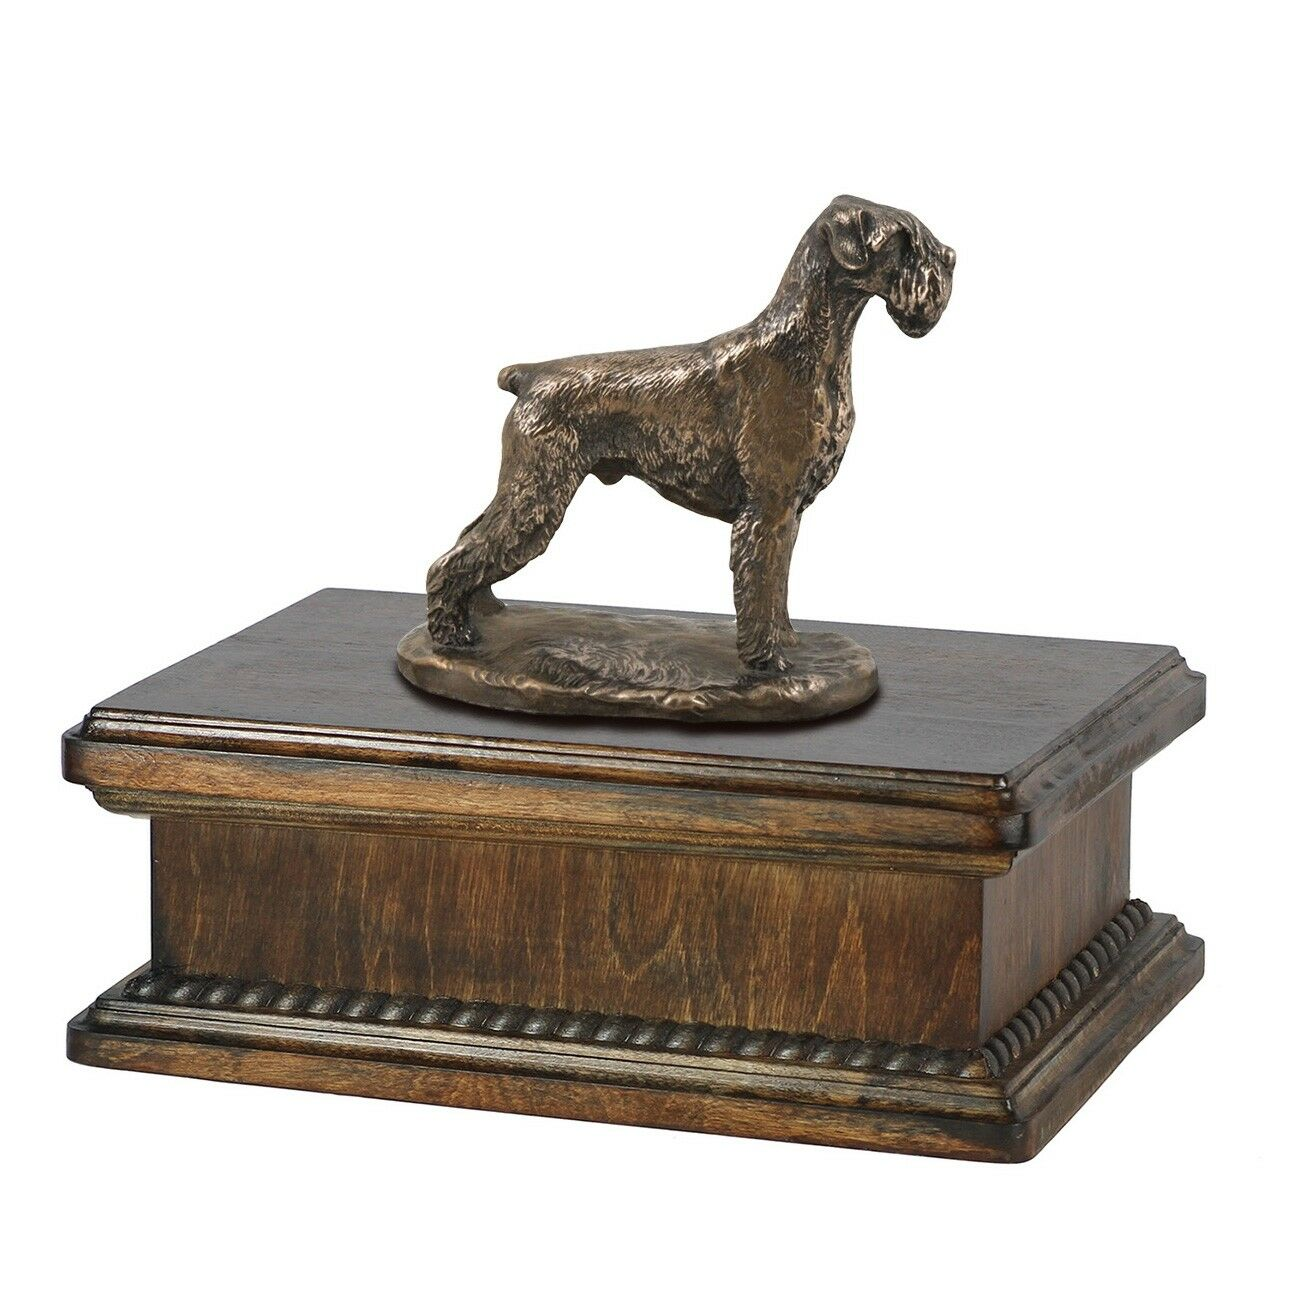 Schnauzer uncropped - exclusive urn with dog statue, High Quality, Art Dog